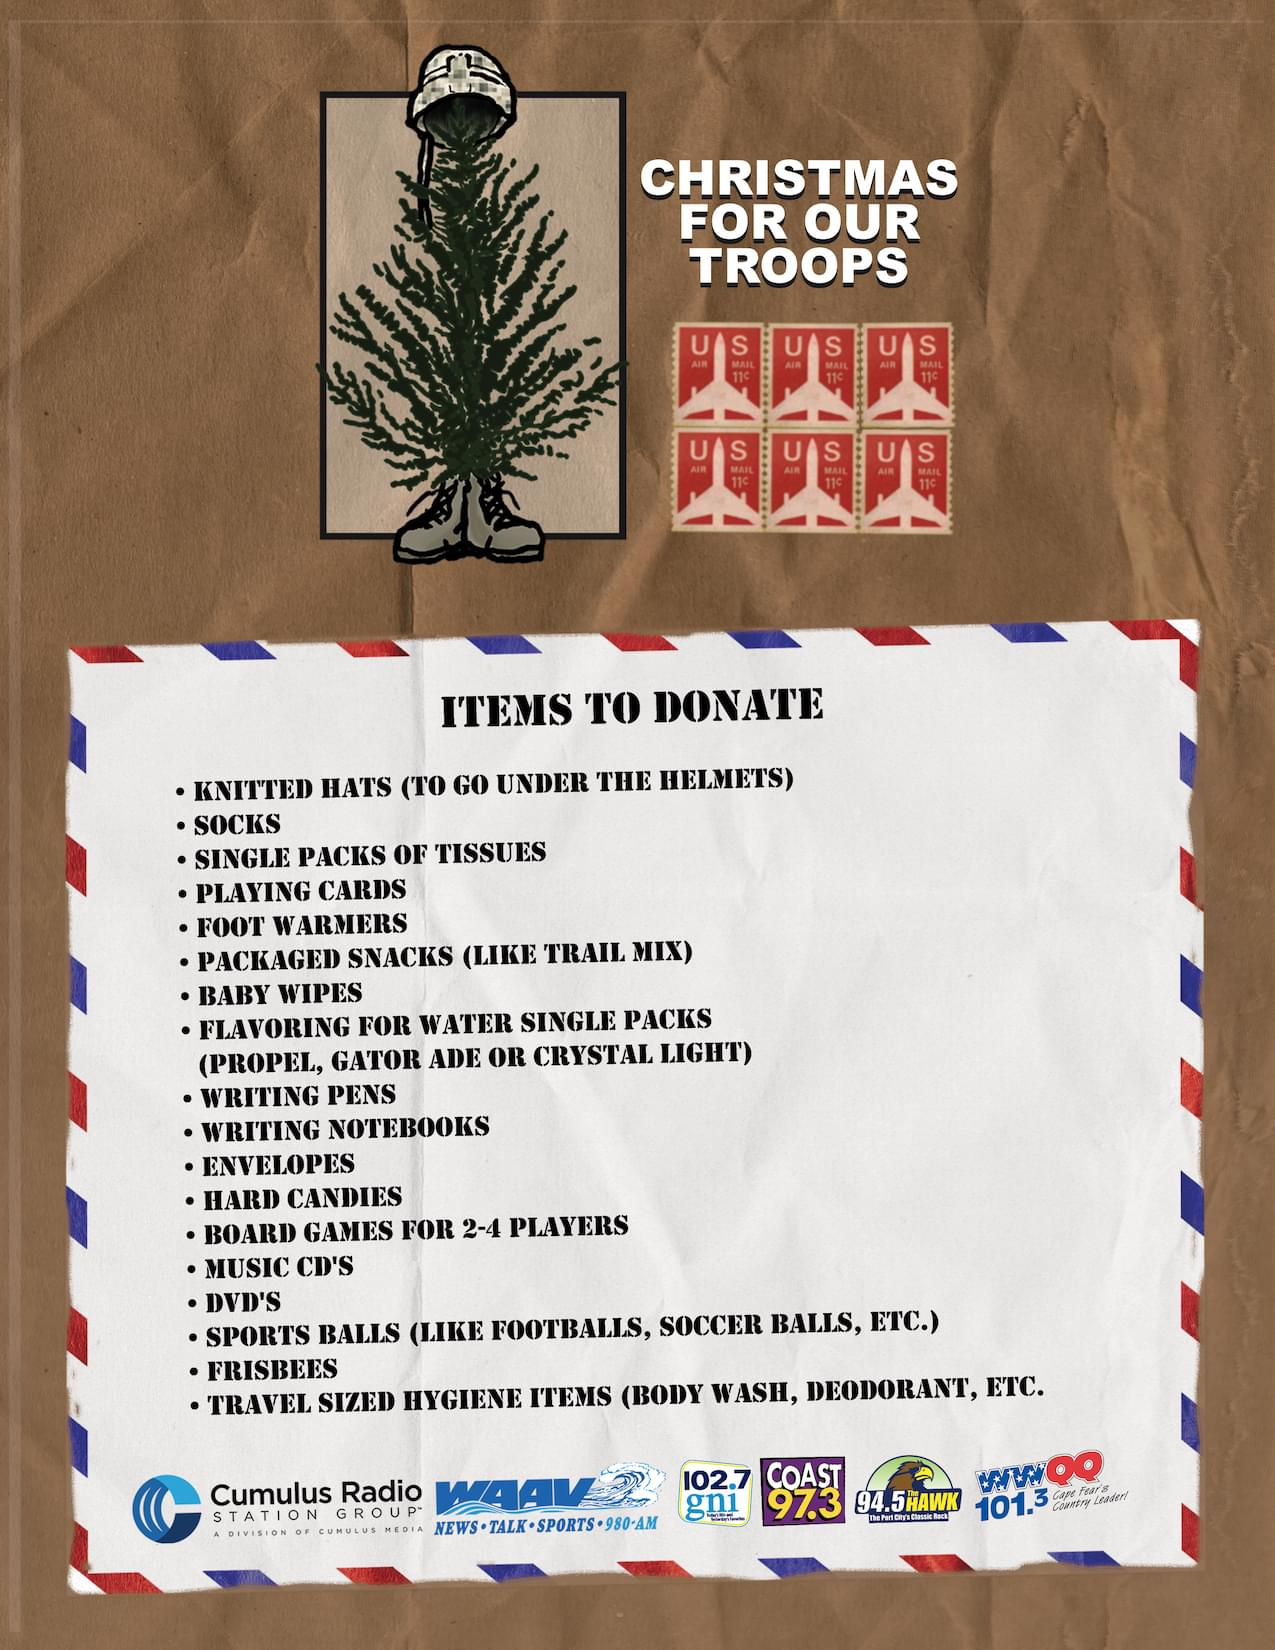 Christmas For Our Troops 2019 Wgni Fm